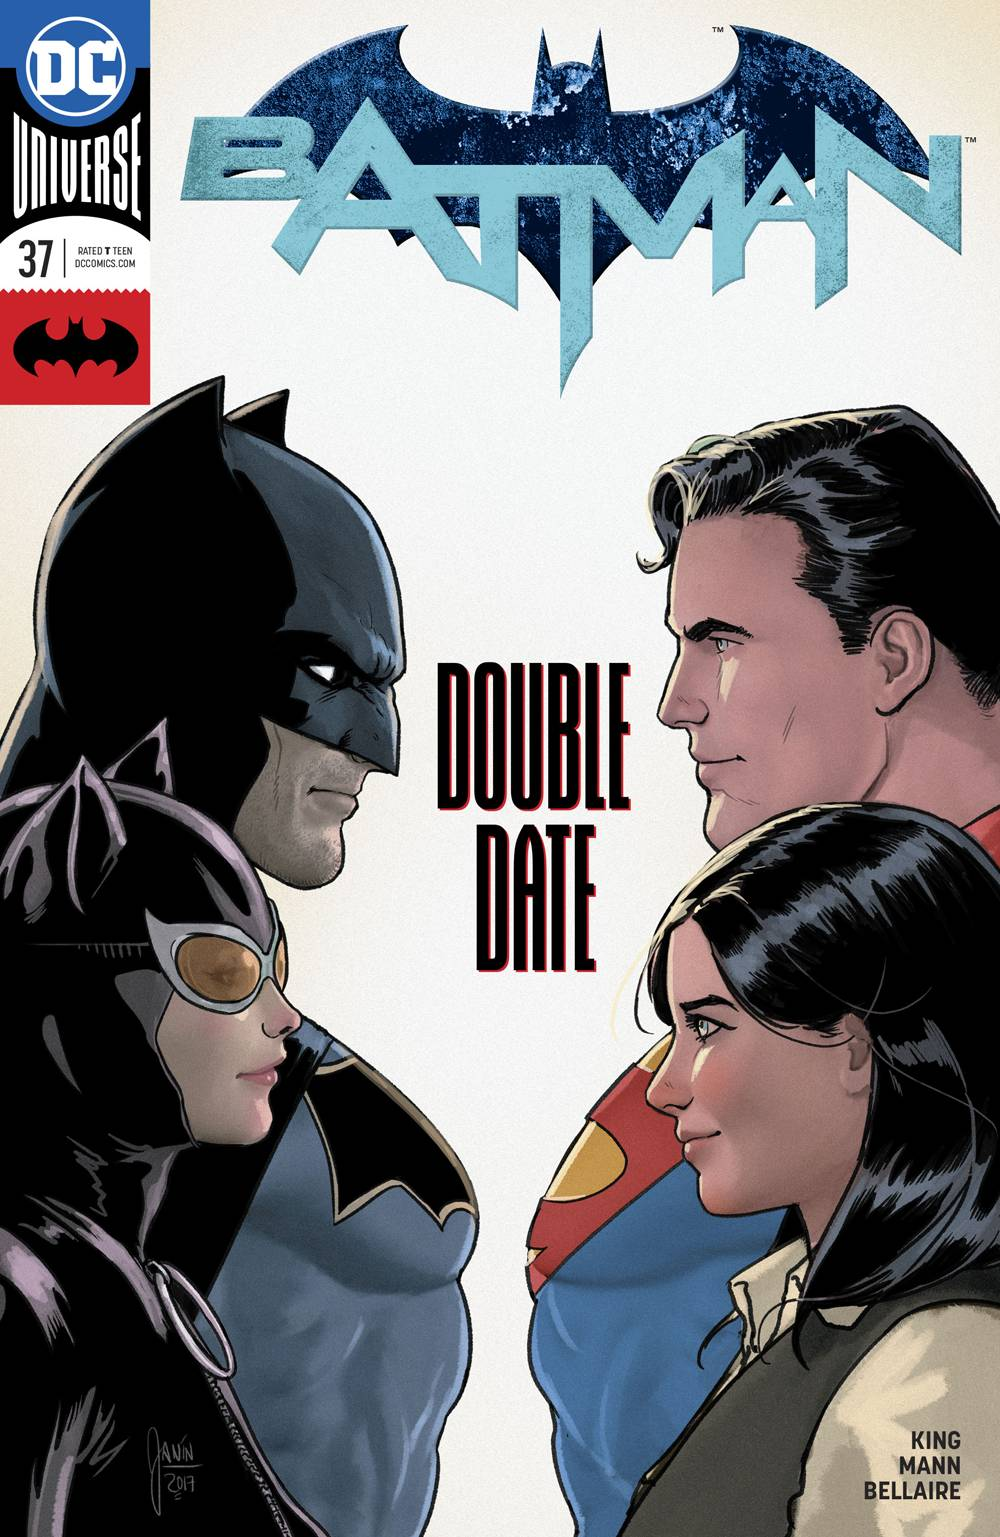 Batman #37. Look how cute Lois looks